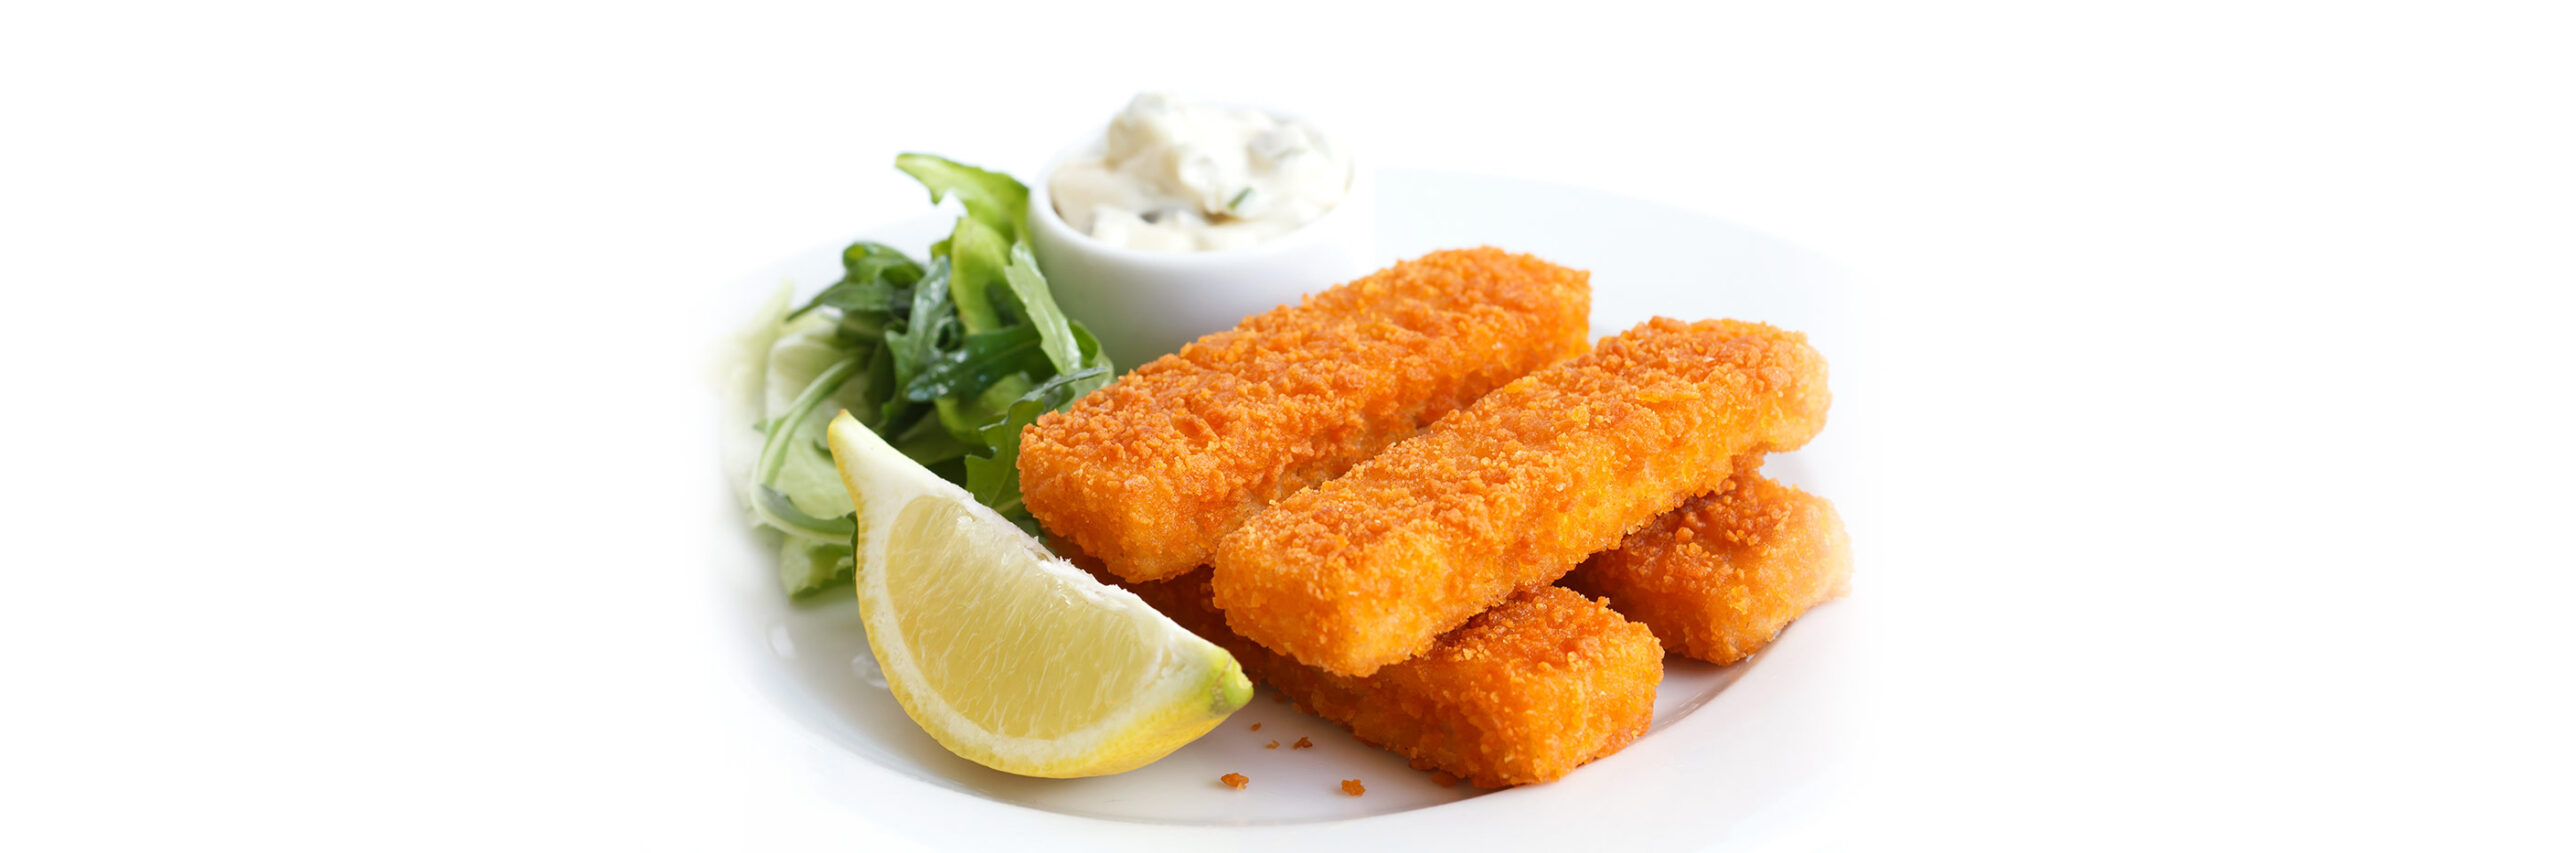 image of a plate of fish fingers